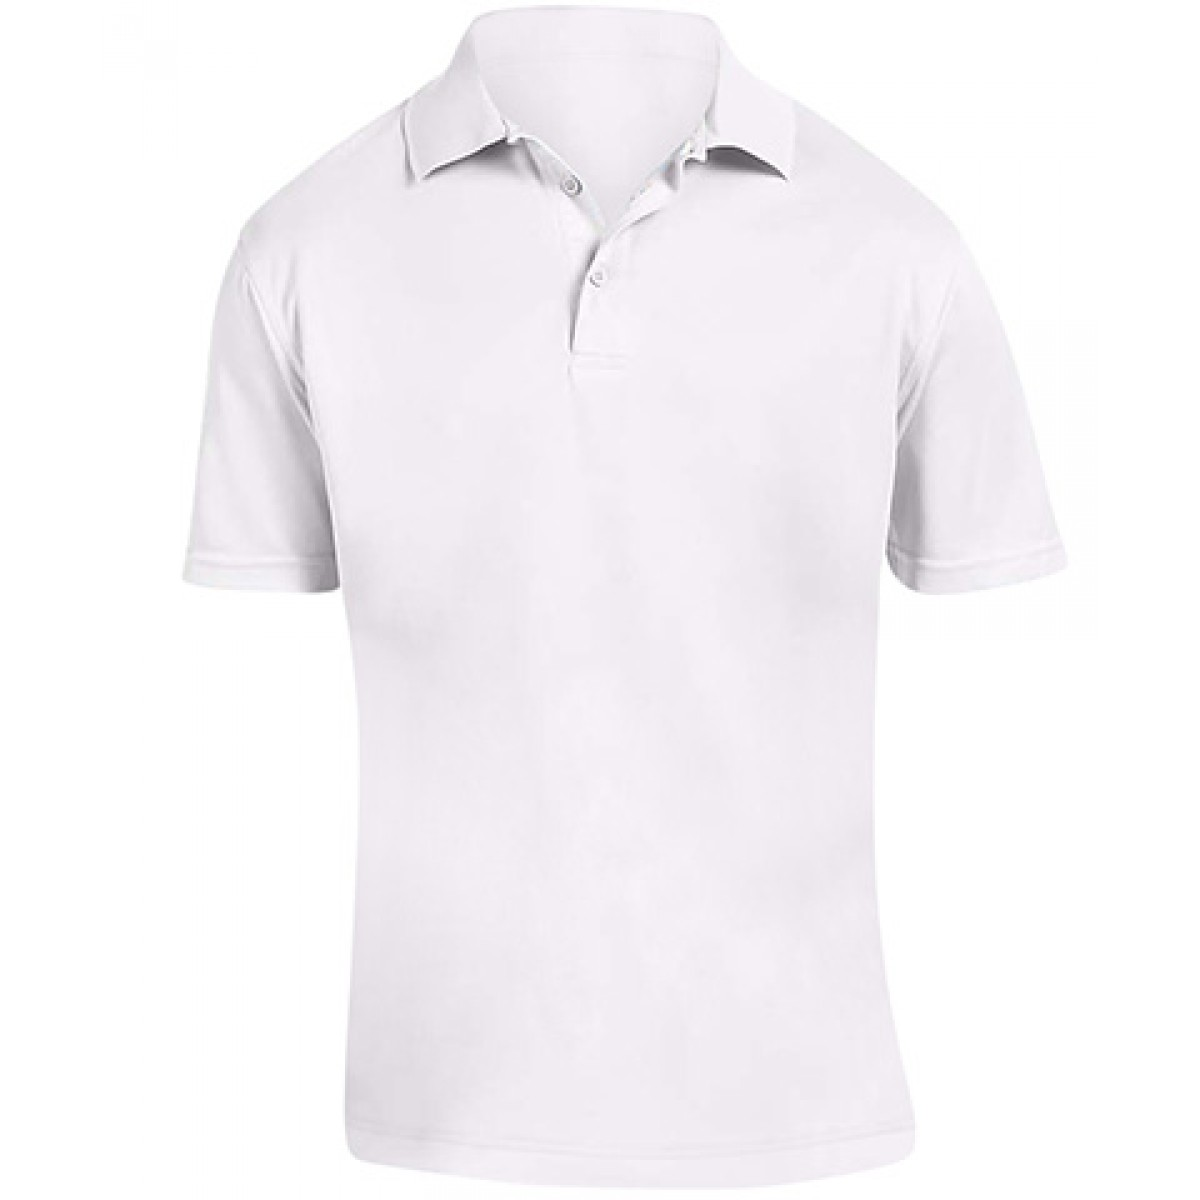 Men's 4 oz. Polytech Polo-White-4XL